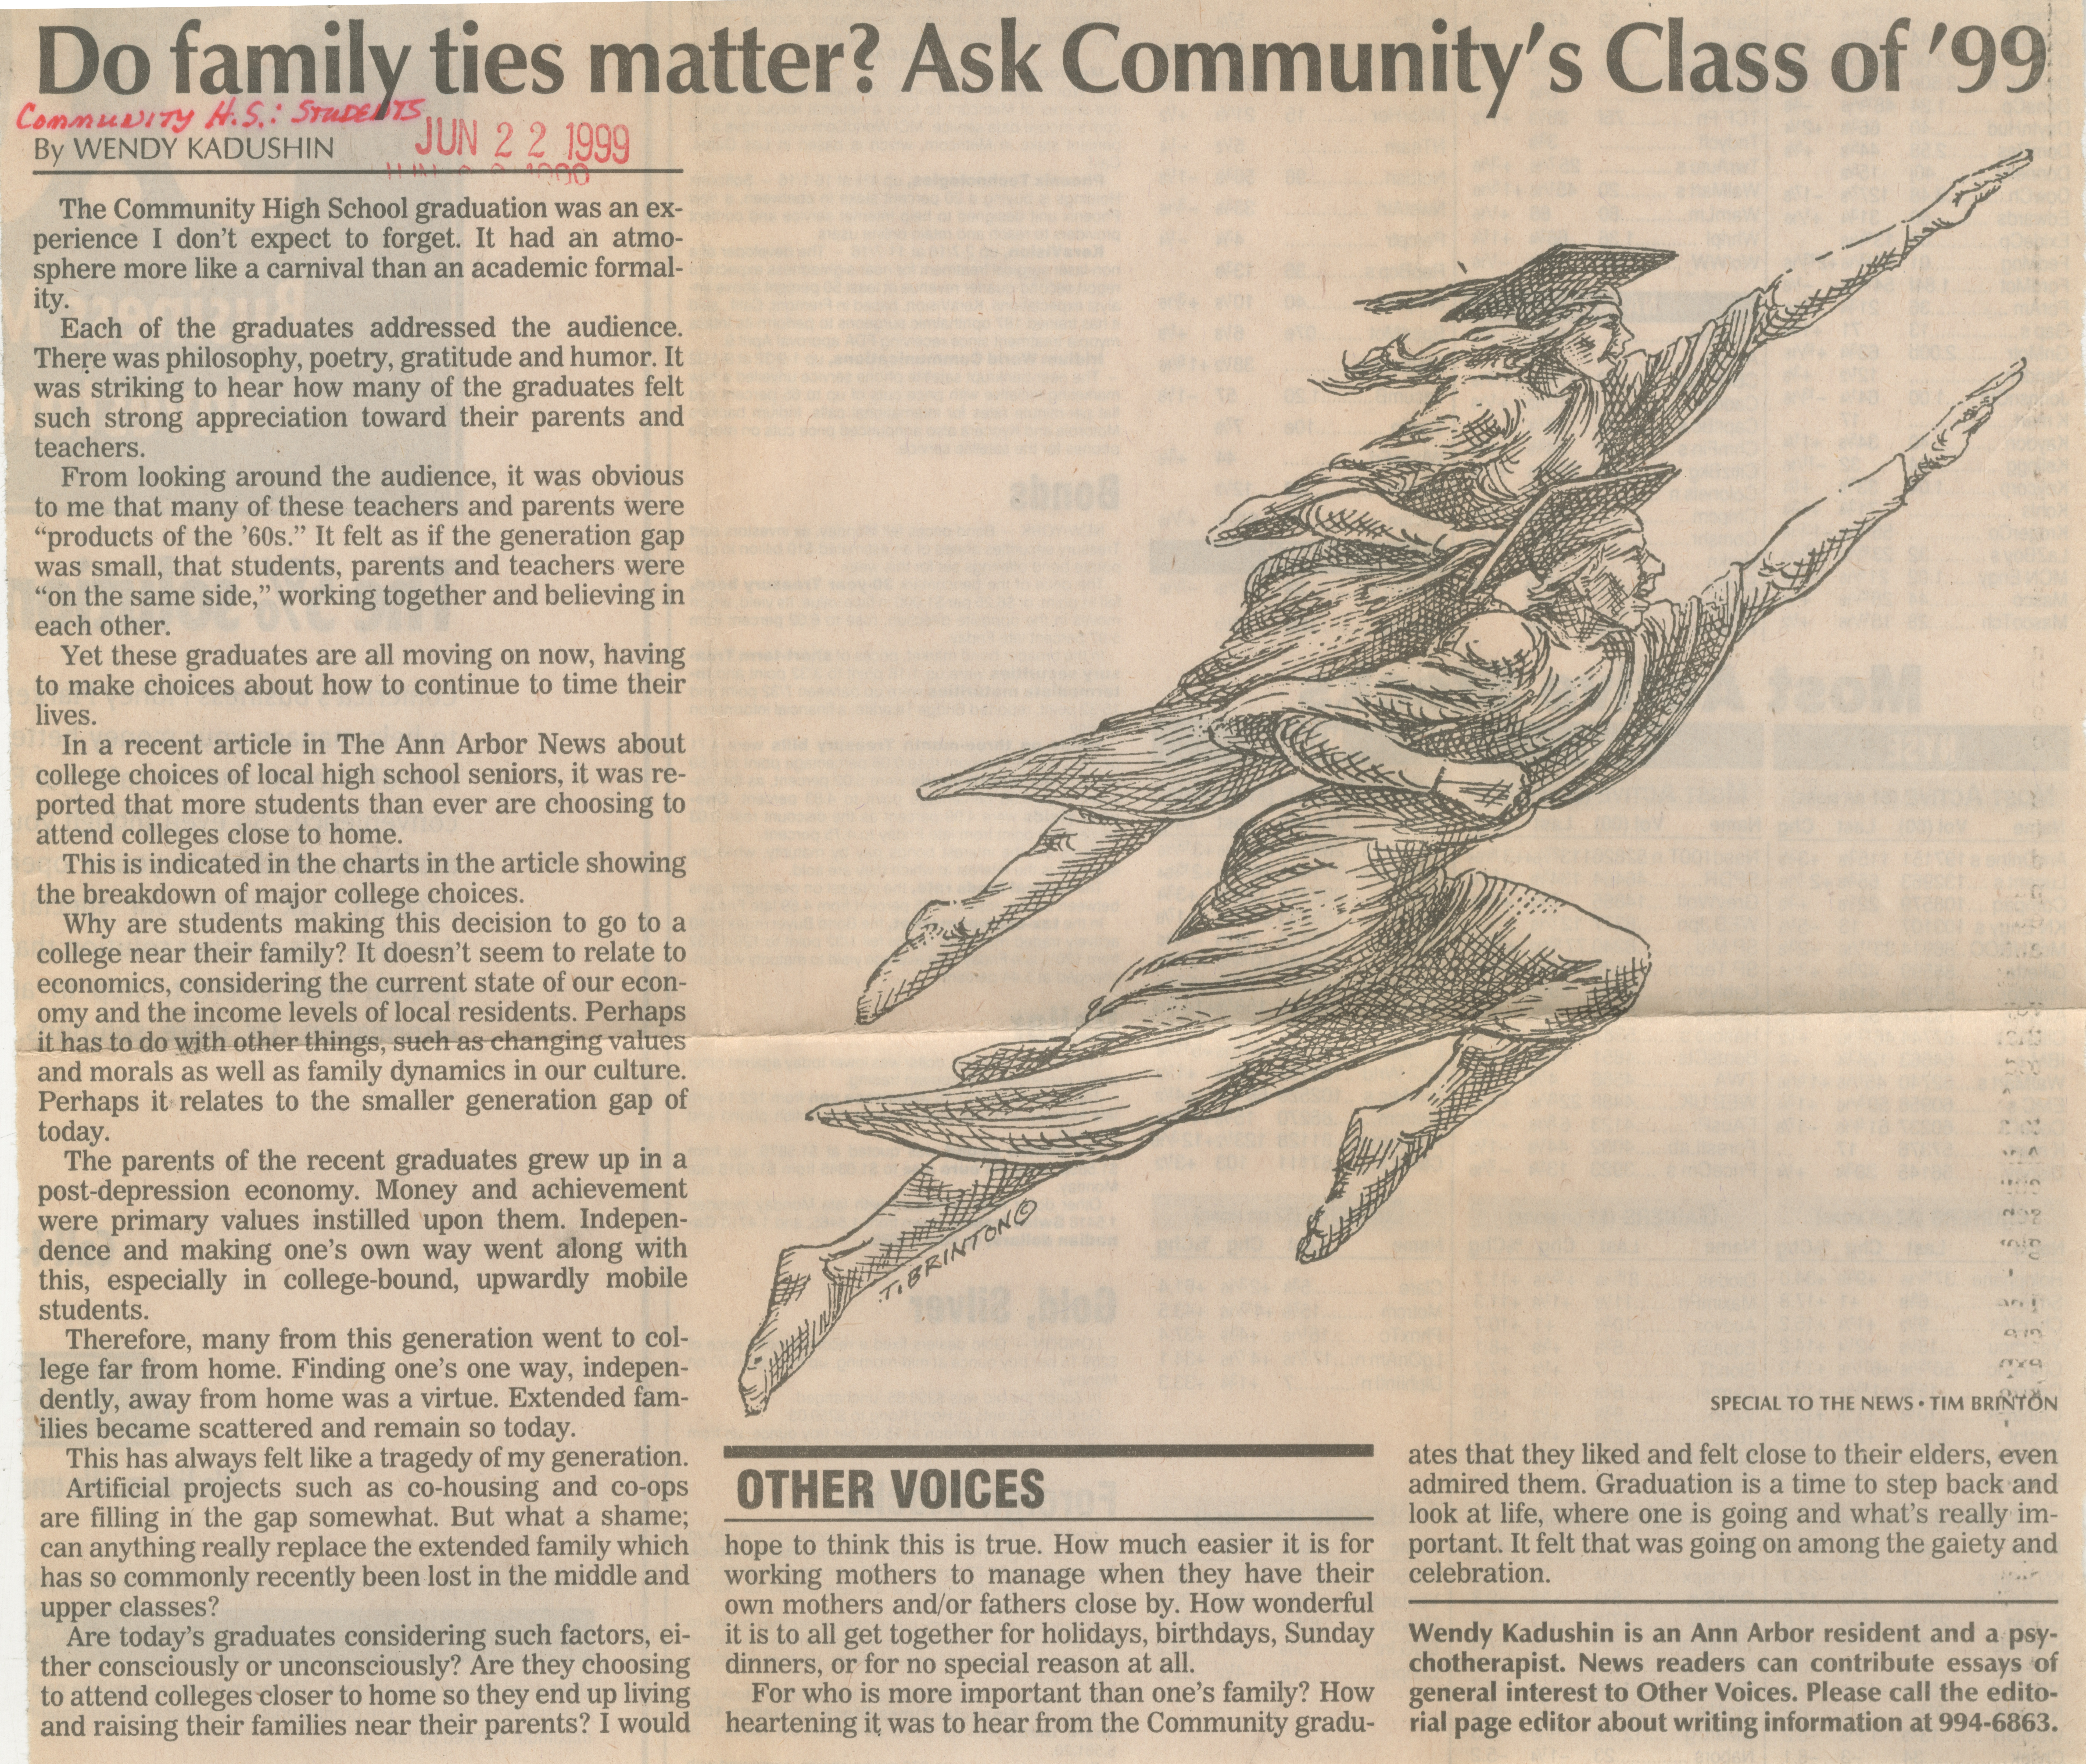 Do family ties matter? Ask Community's Class of '99 image